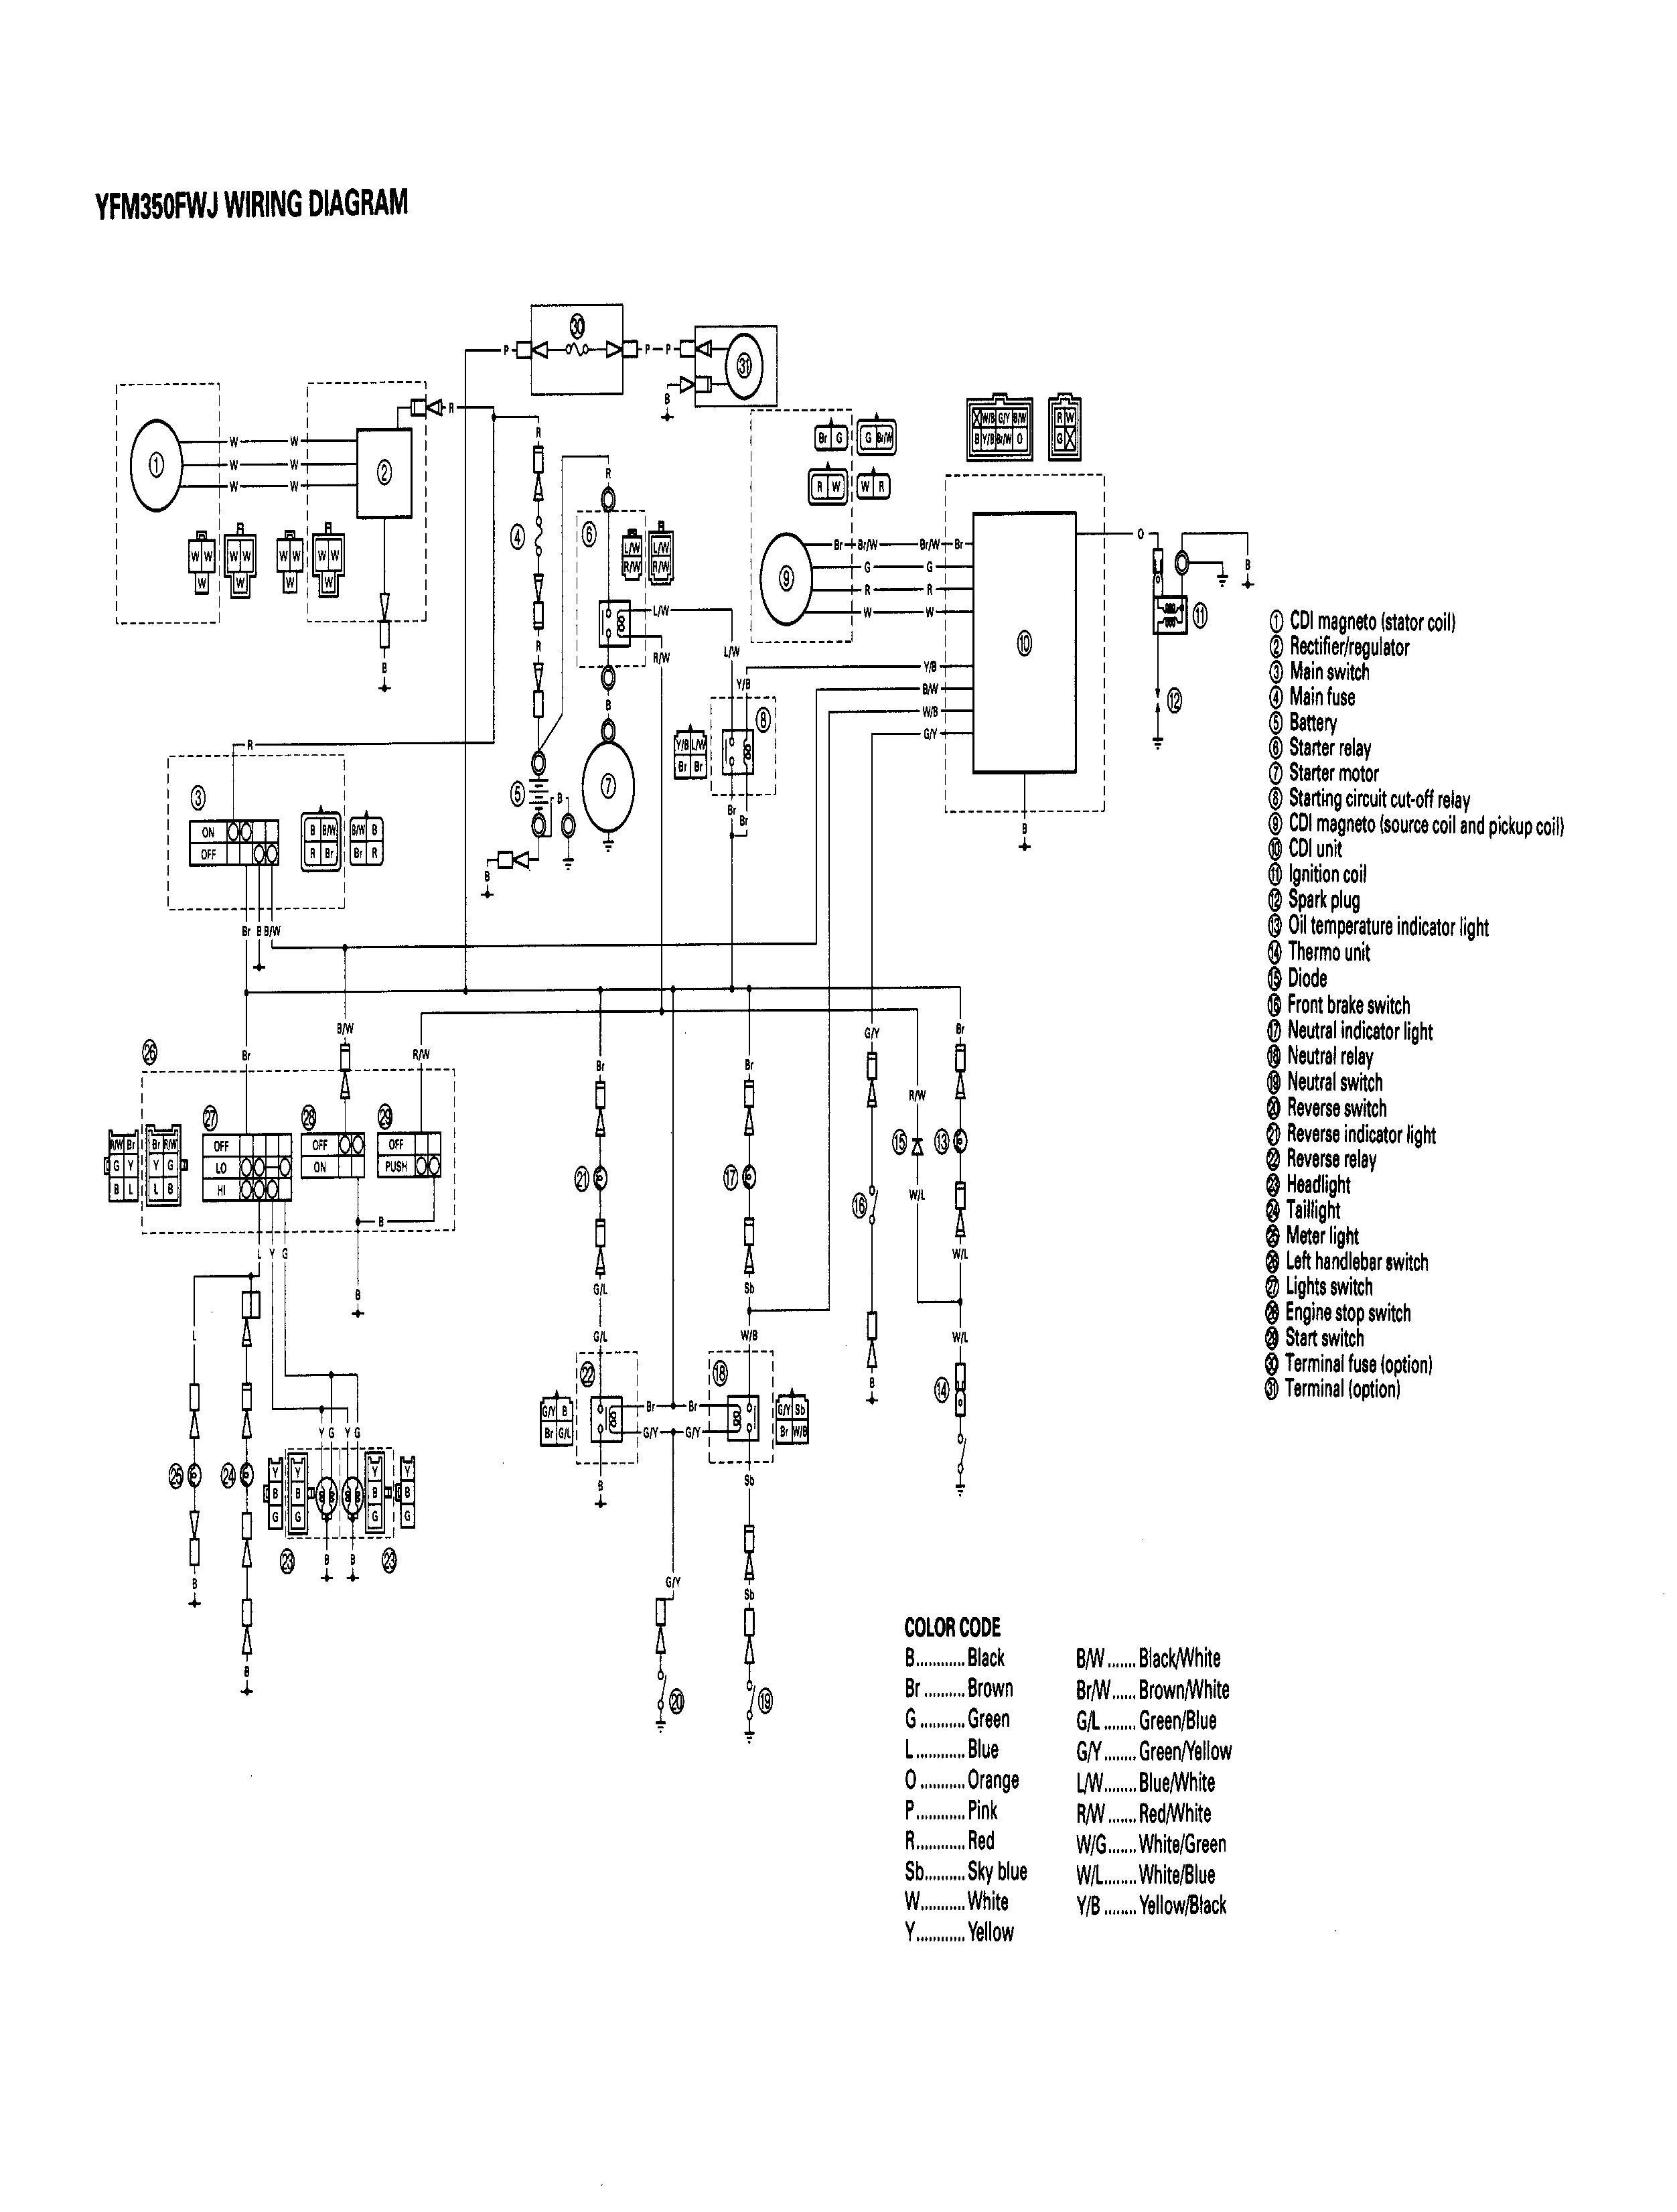 54194d1504032570 1996 bigbear 350 4x4 wiring yamaha big bear 350 wiring diagram_548755 yamaha grizzly 350 wiring diagram big bear 350 wiring diagram 2001 yamaha grizzly 600 wiring diagram at virtualis.co